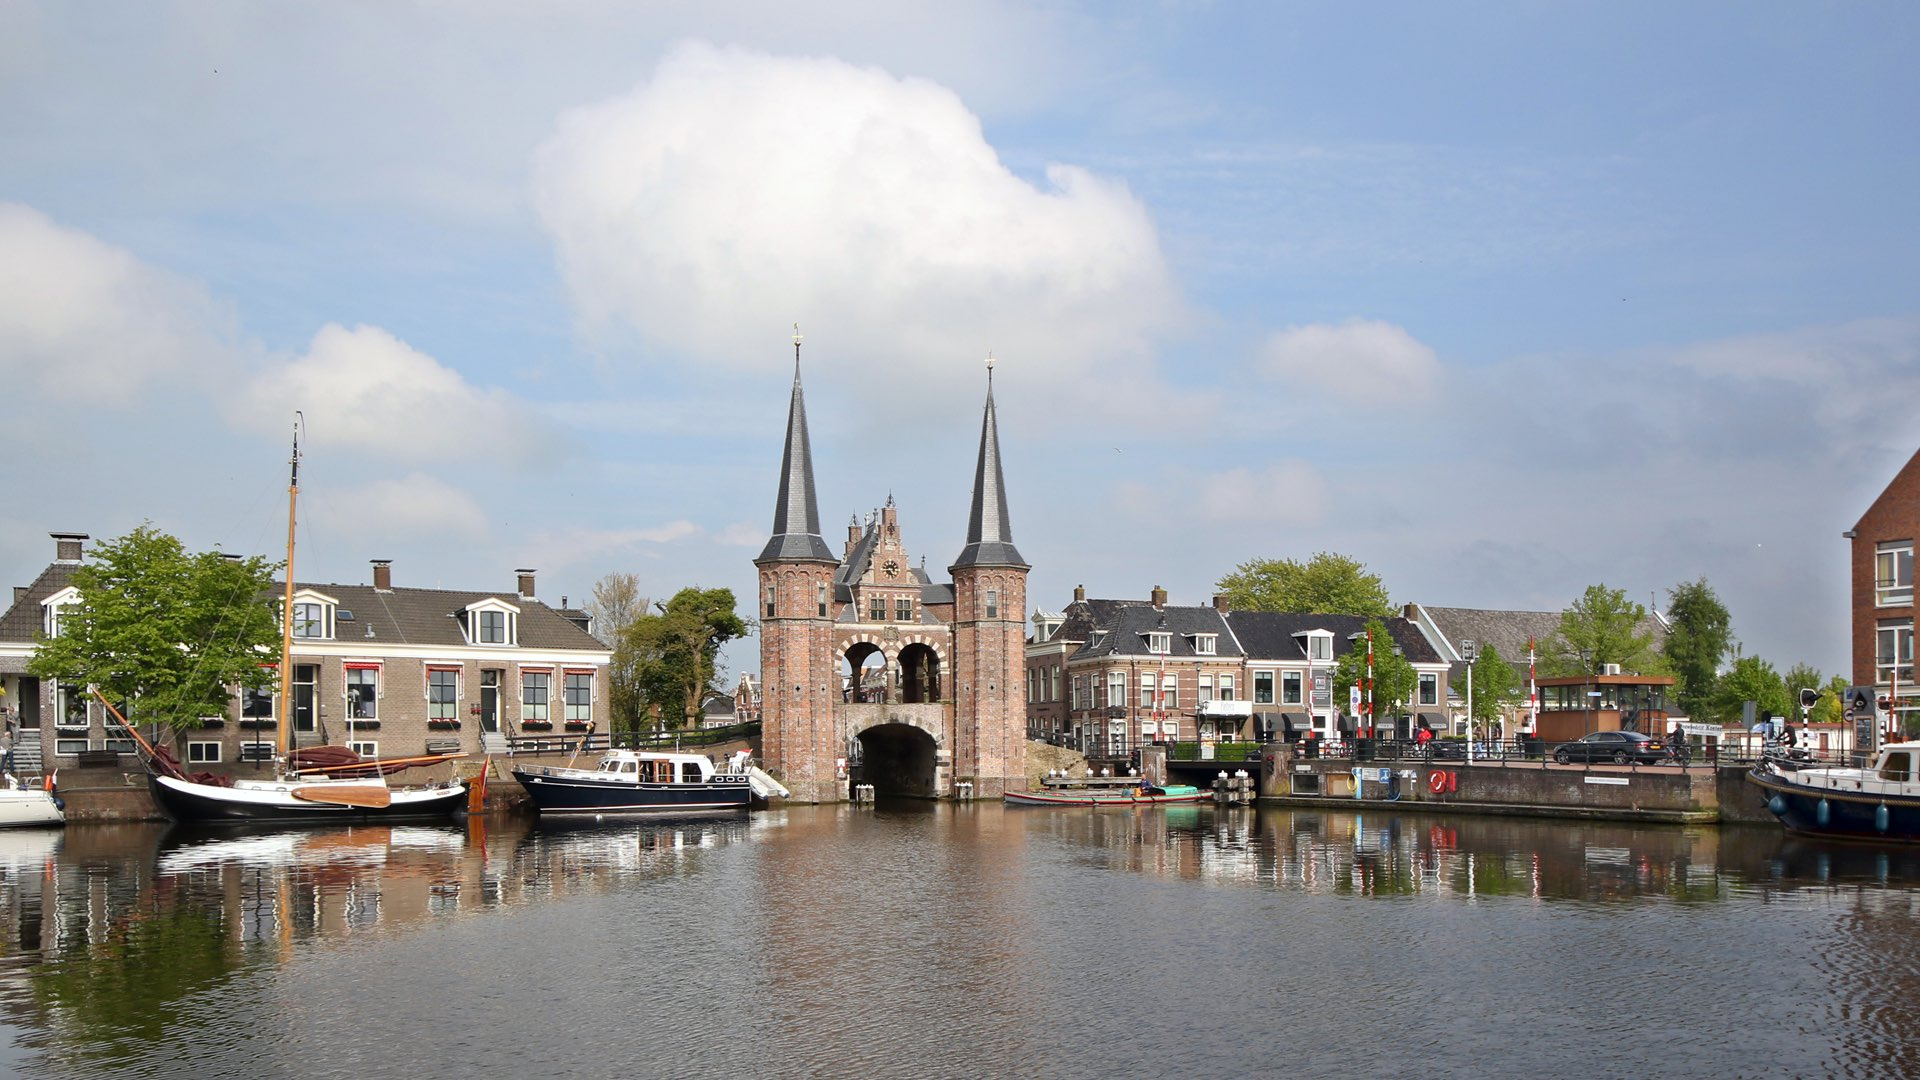 Waterpoort-kolk